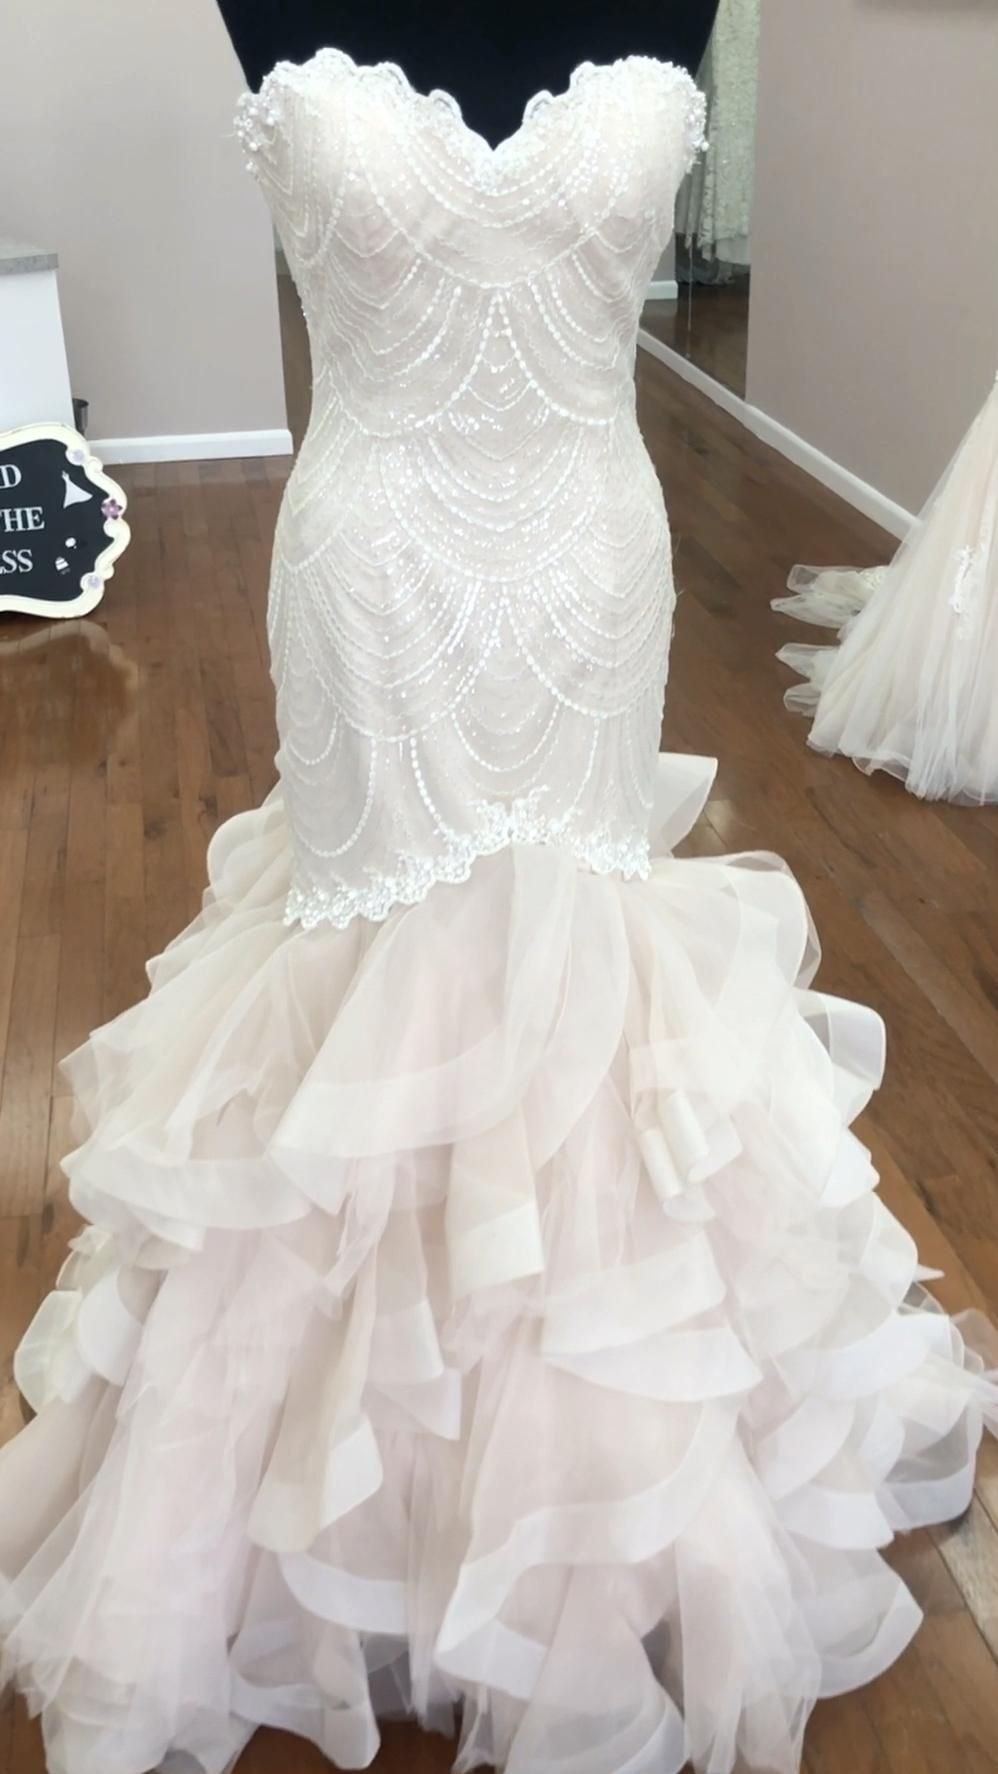 Beautiful Ruffled Bridal Gown Video Wedding Dresses Lace Bridal Outfits Lace Bride [ 1774 x 998 Pixel ]